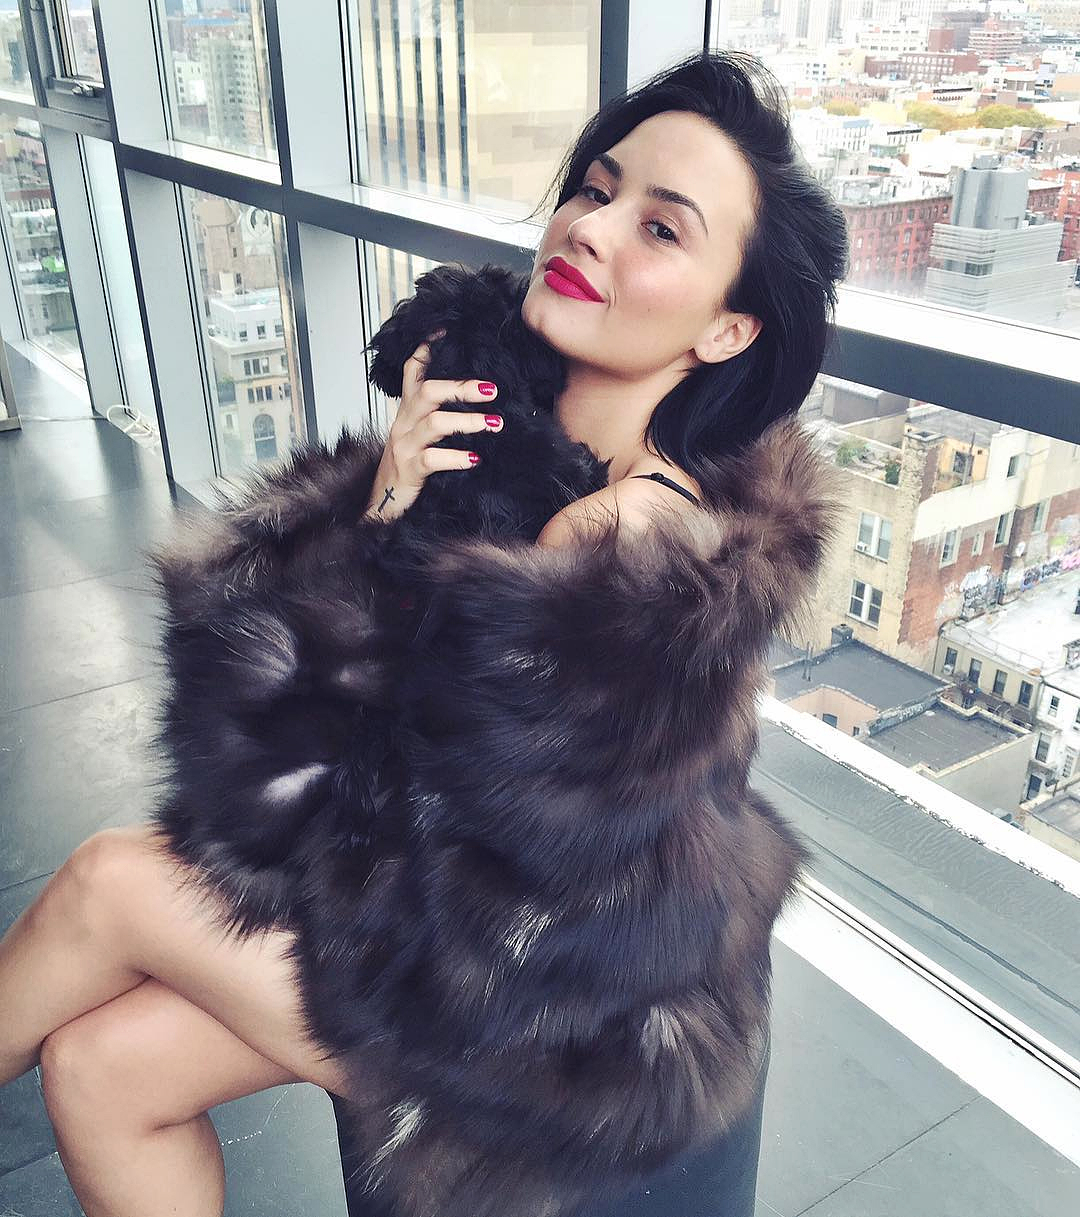 bb9dfea88 Demi Lovato Sparks Outrage Wearing a Fur Coat While Cuddling Her Dog: Pic